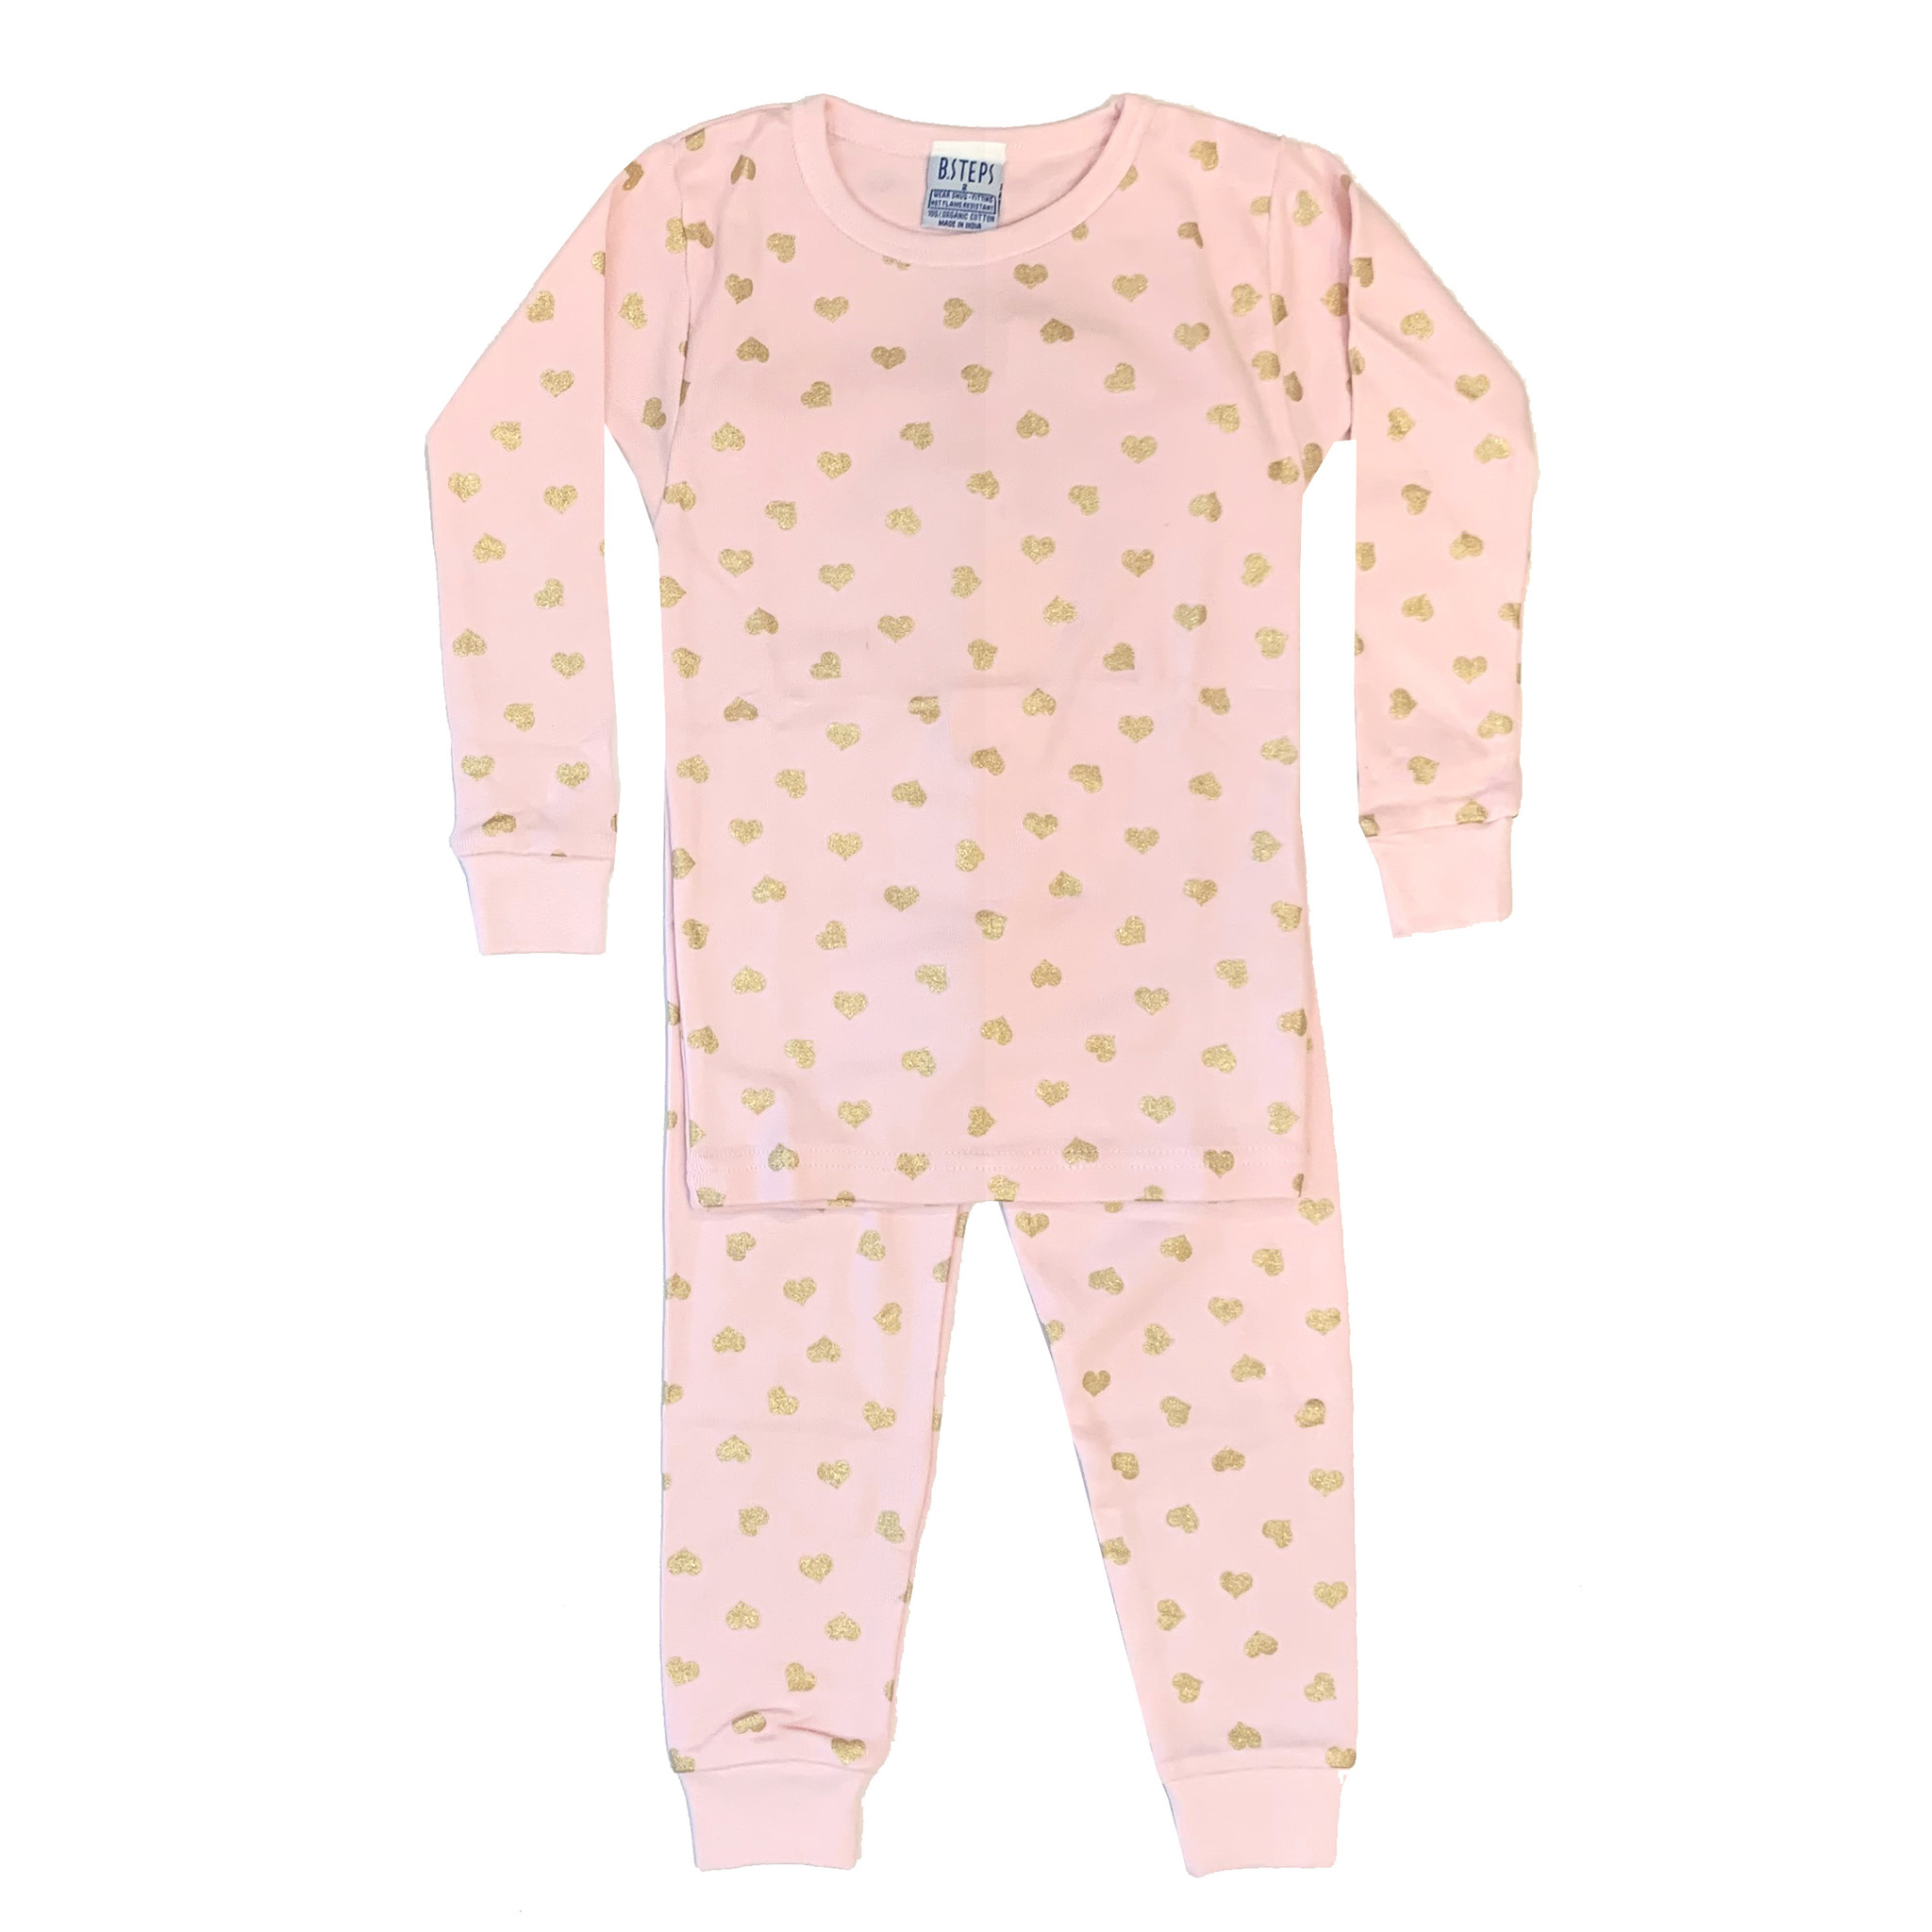 Baby Steps Pink with Gold Hearts Infant PJ Set